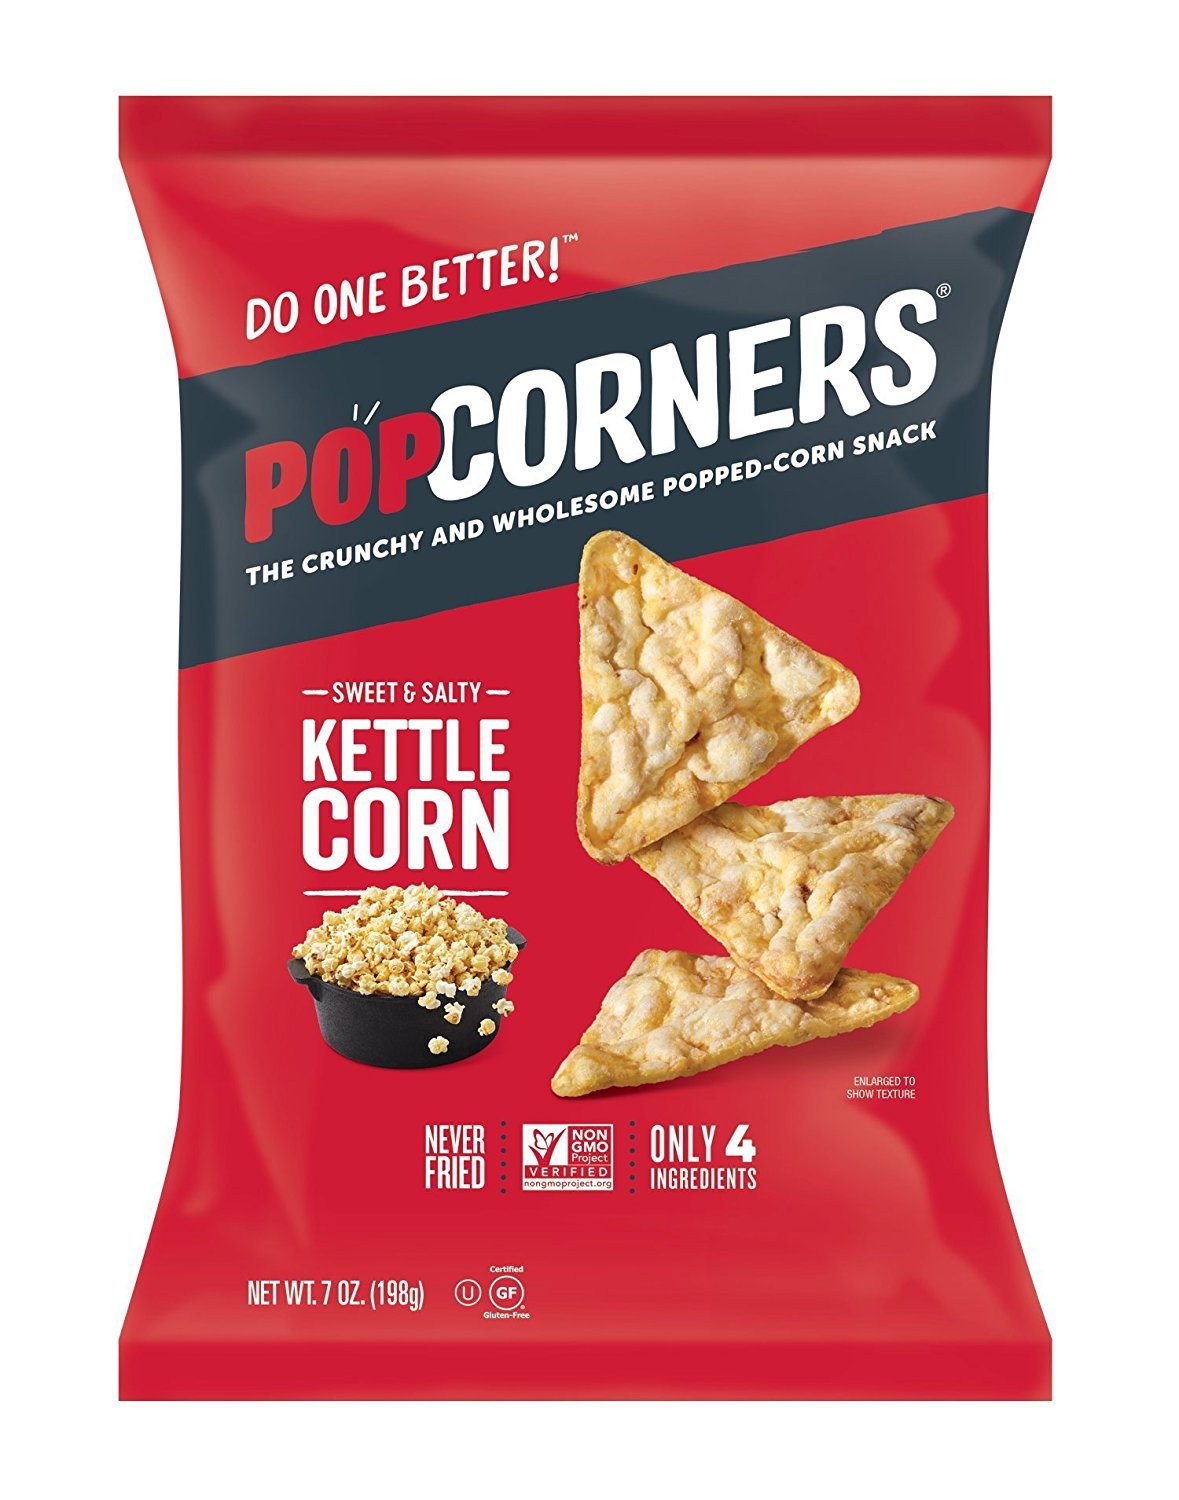 Popcorners Natural Popped Corn Chips 5-Ounce Package, Kettle Flavor (Case of 6)